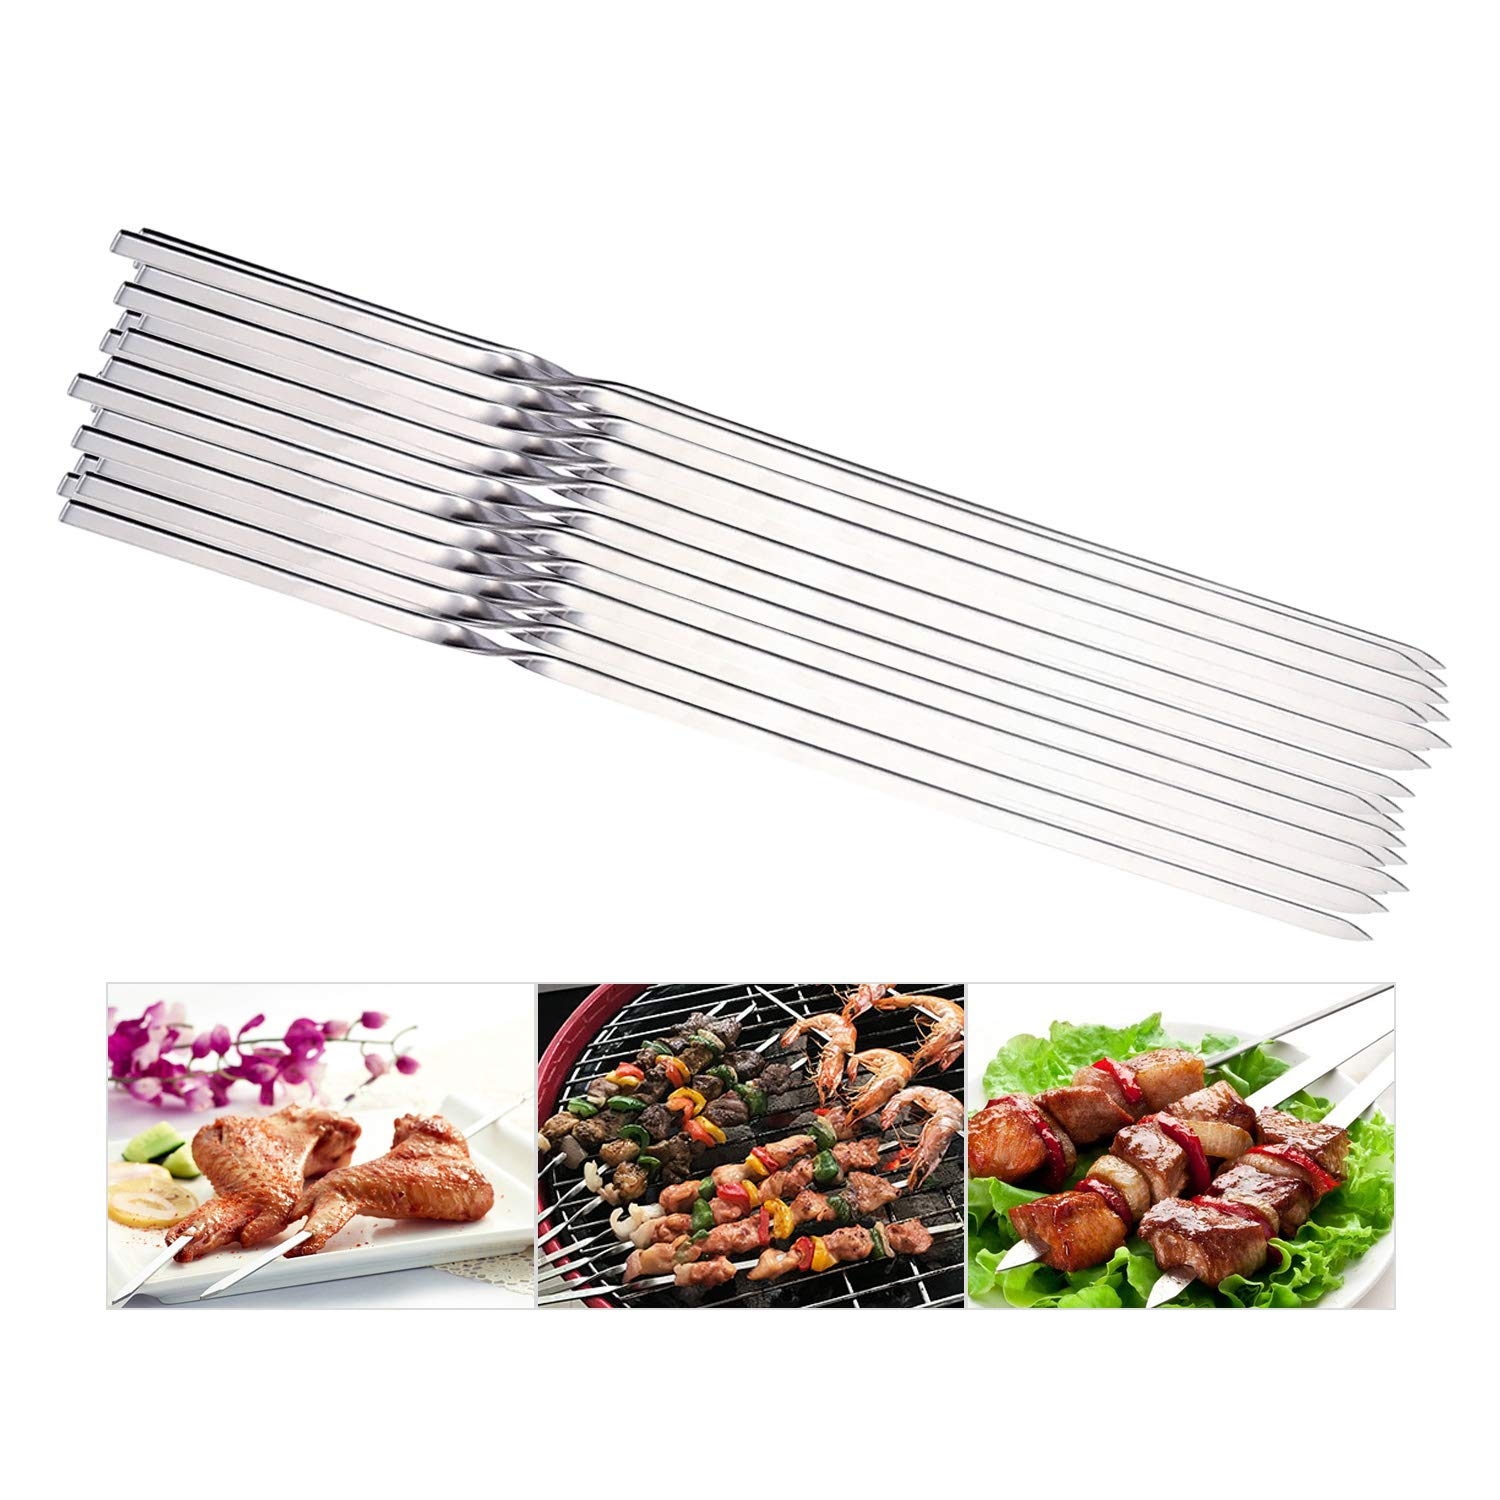 "REDCAMP Flat Barbeque BBQ Skewers Stainless Steel, Set of 20, 15.3"" Long Metal Reusable Kabob Skewers for Grill"